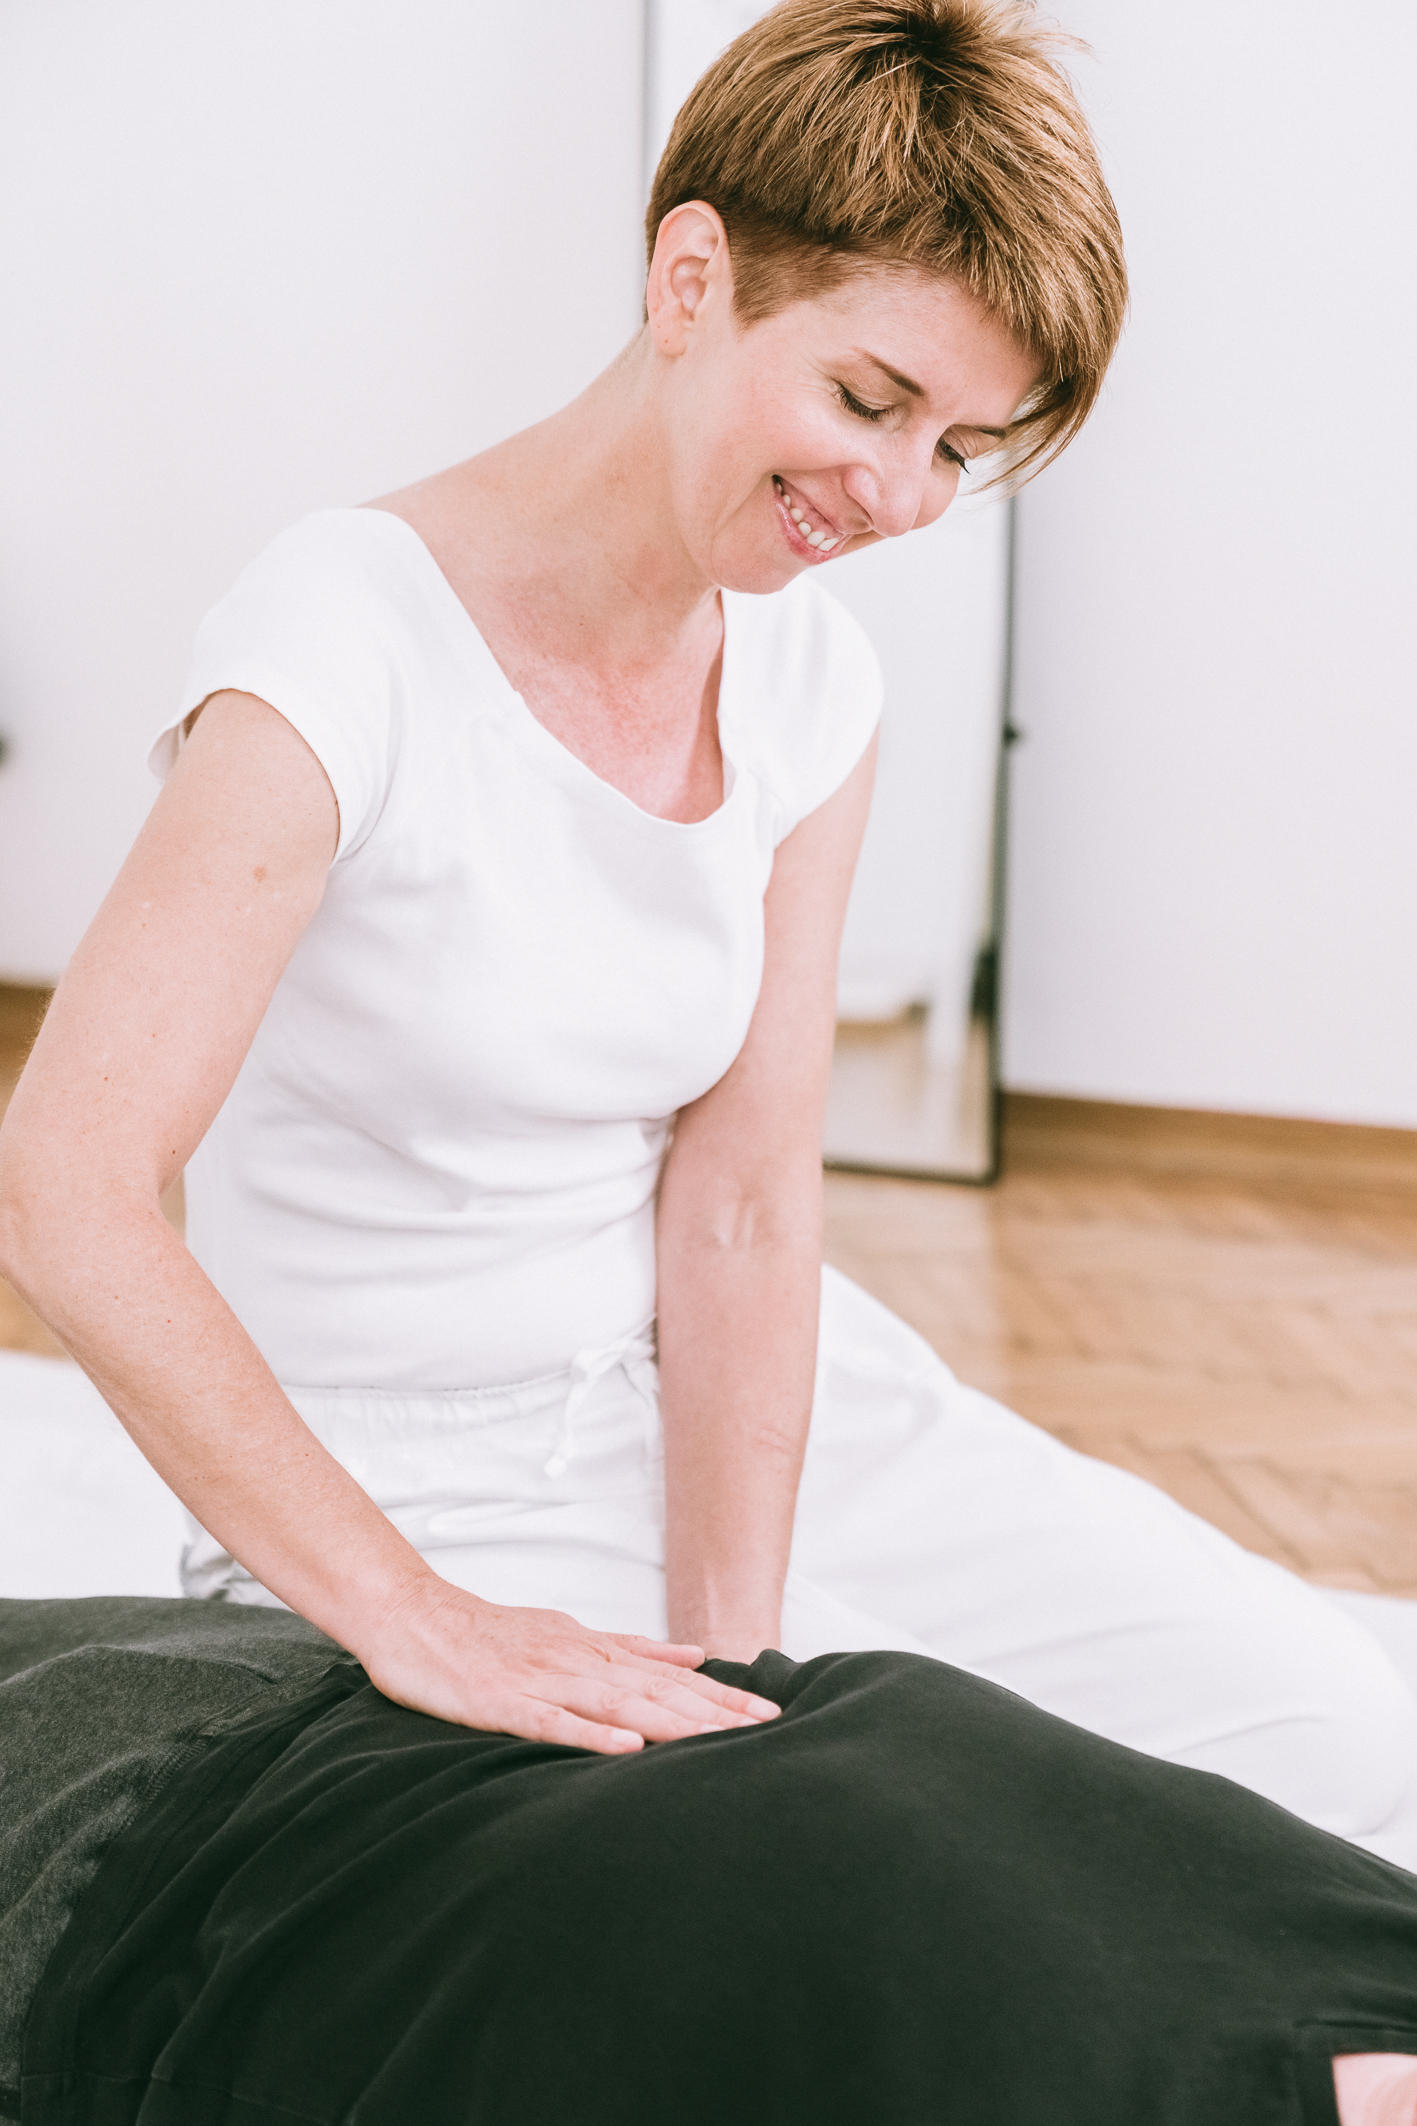 Monika Sperber, Shiatsu therapist